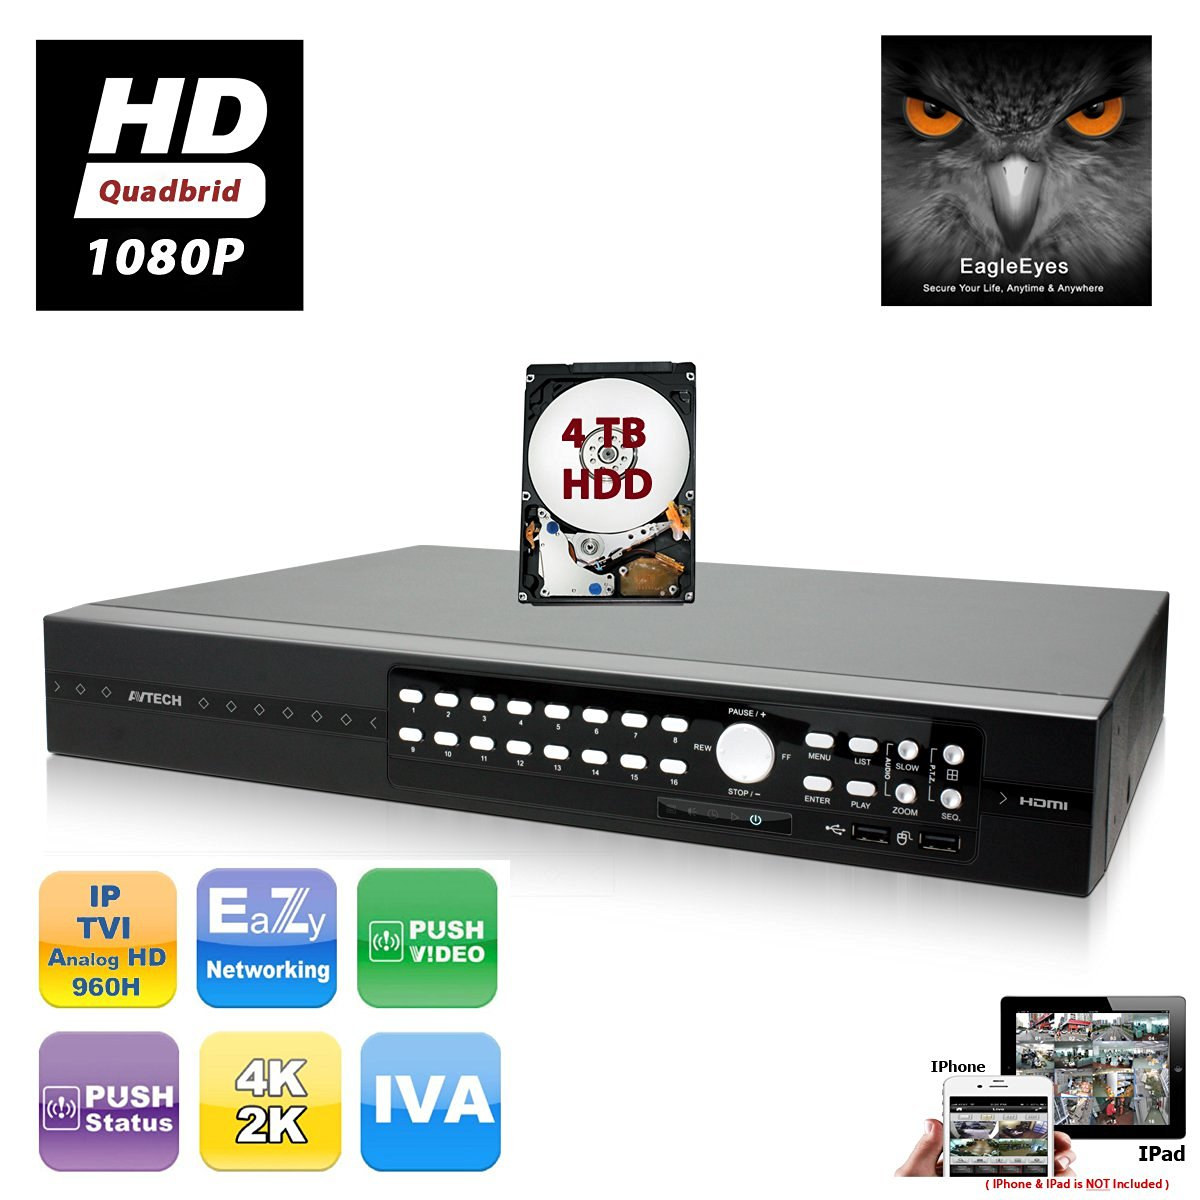 EVERTECH AVTECH H.264 16 Channel HD 1080P Quadbrid TVI + AHD + IP + Analog EagleEyes Push Video Security Digital Video Recorder Cloud support DVR for CCTV Mobile Phone Access w/4TB